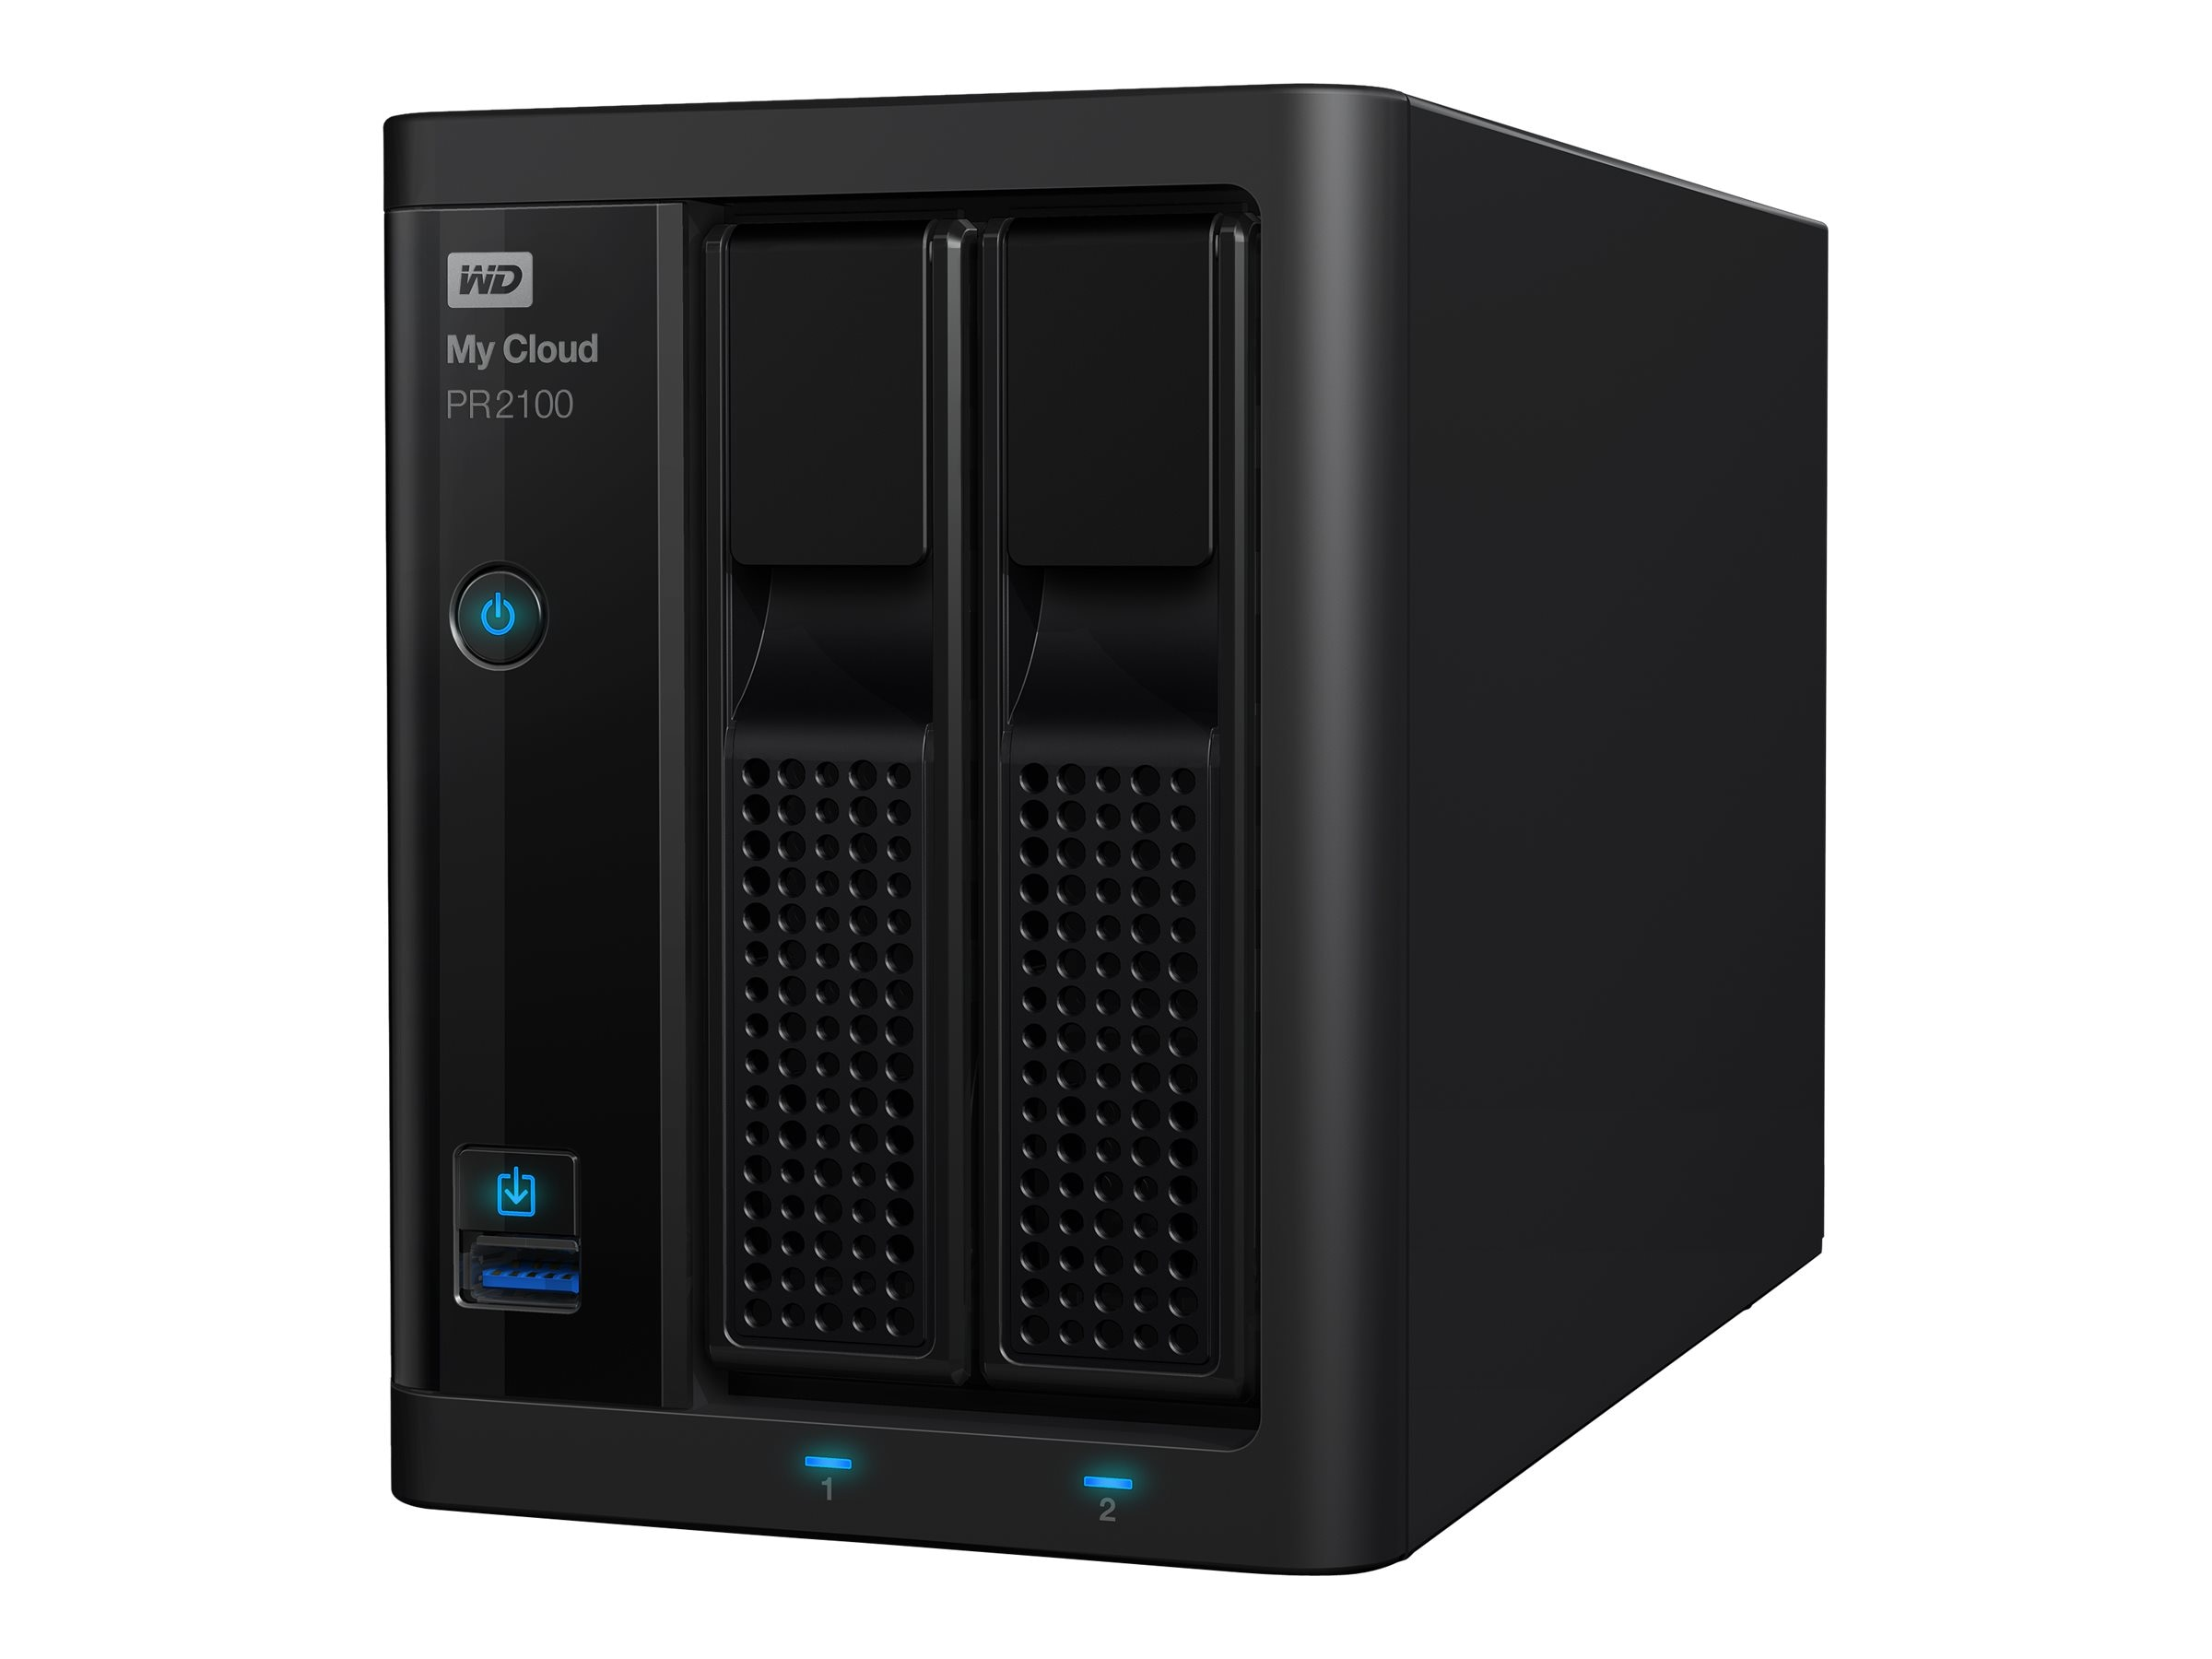 WD 8TB My Cloud Pro Series PR2100 Storage